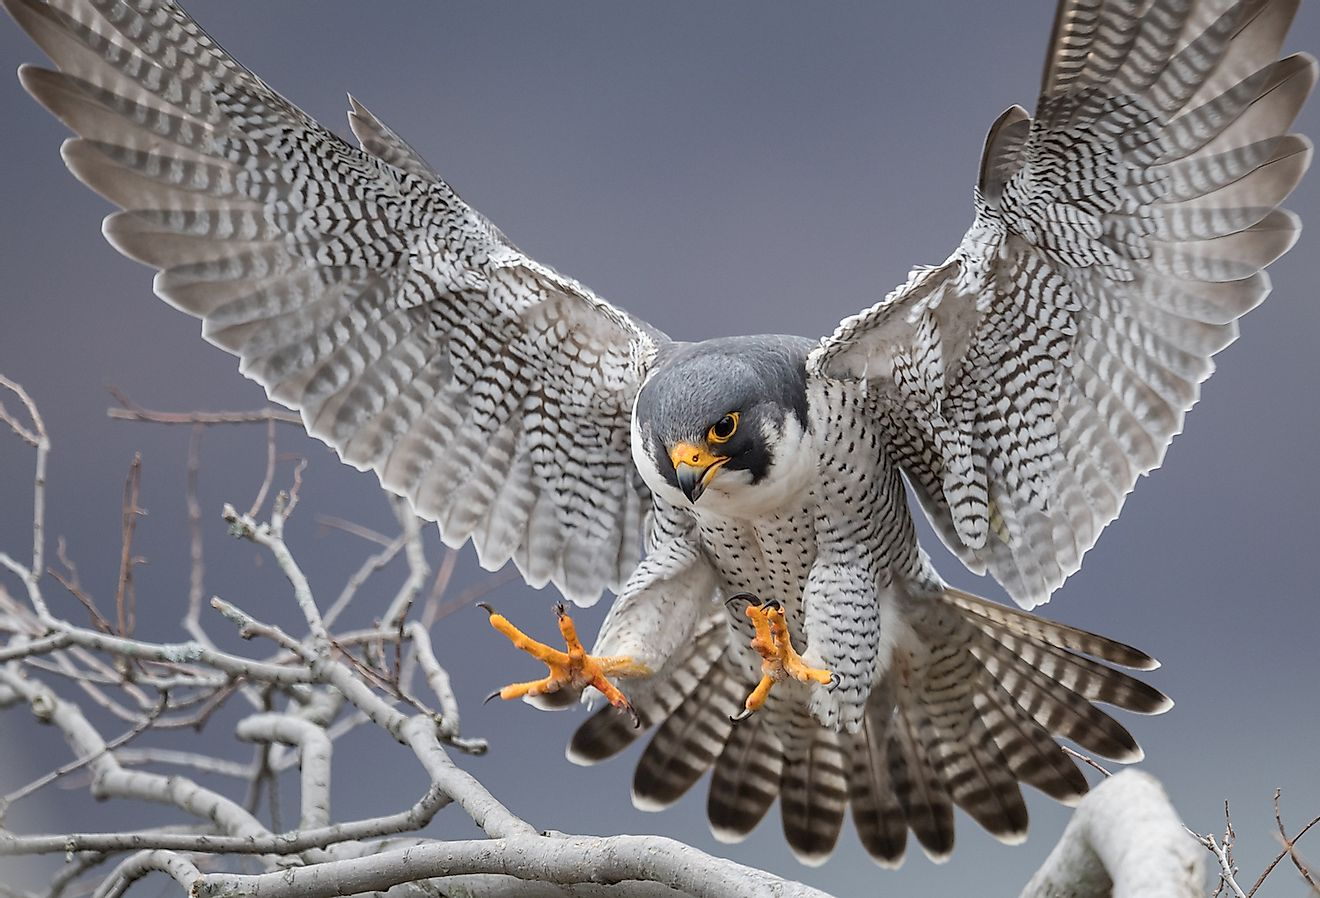 Peregrine Falcon in New Jersey. Image credit: Harry Collins Photography/Shutterstock.com